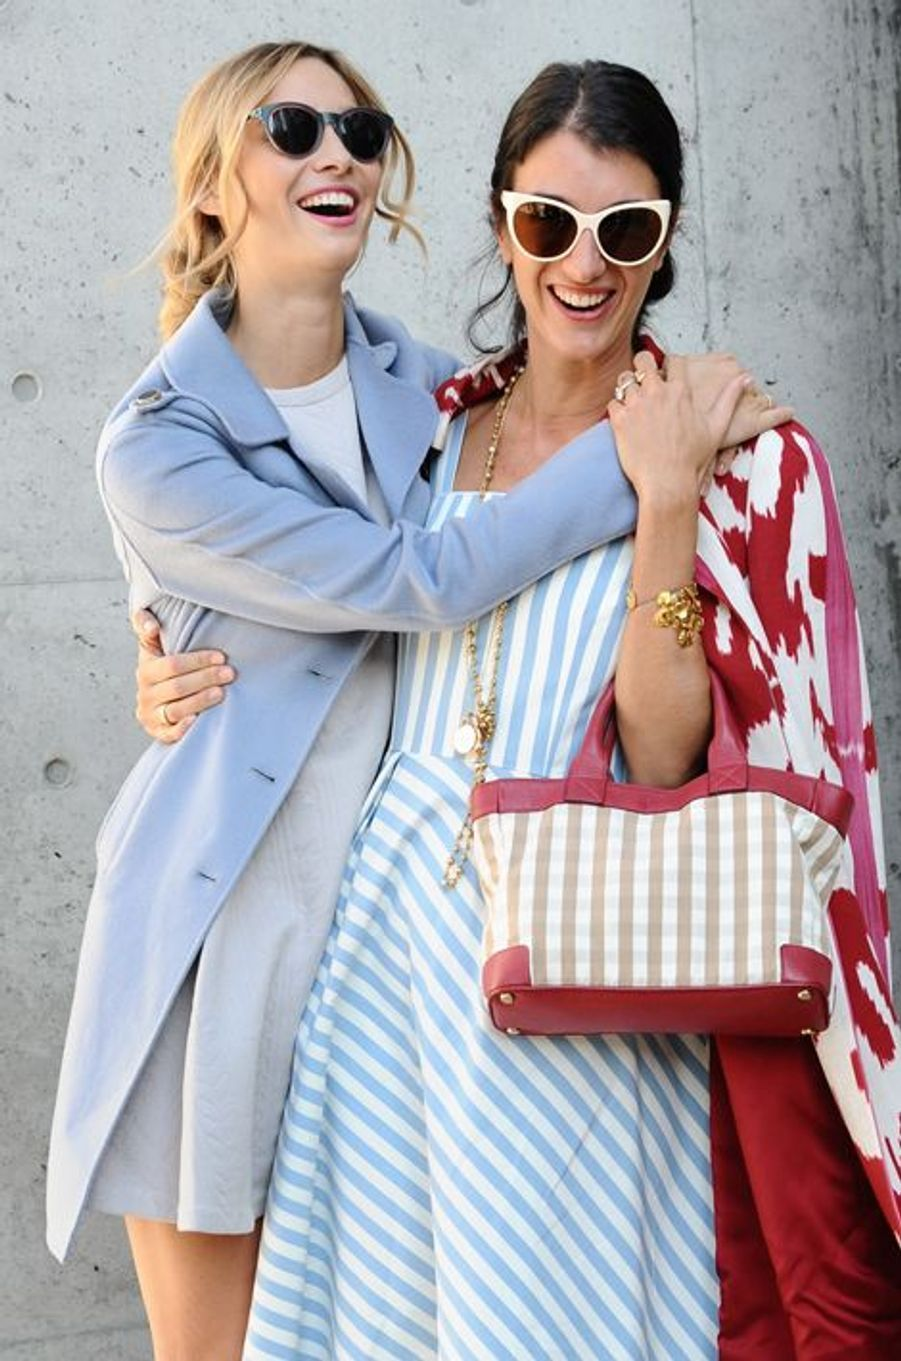 Beatrice Borromeo-Casiraghi avec Marta Ferri à la Fashion Week de Milan, le 25 septembre 2015